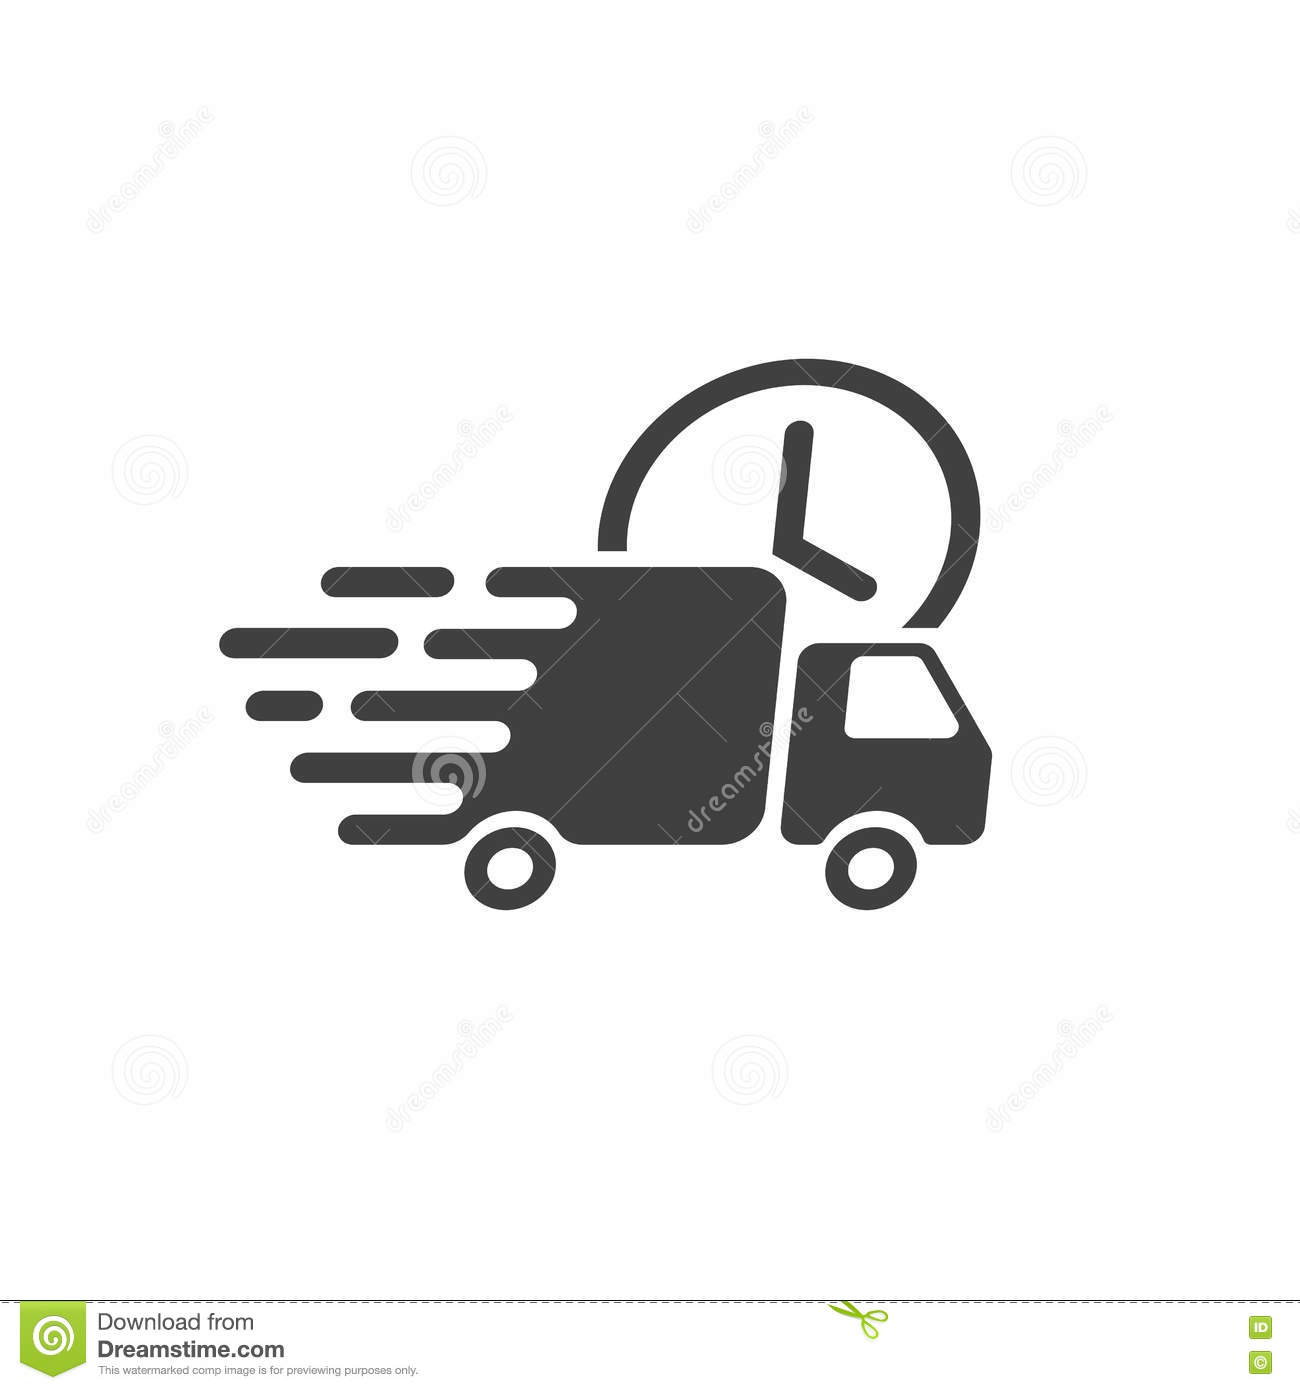 delivery truck icon vector - photo #2